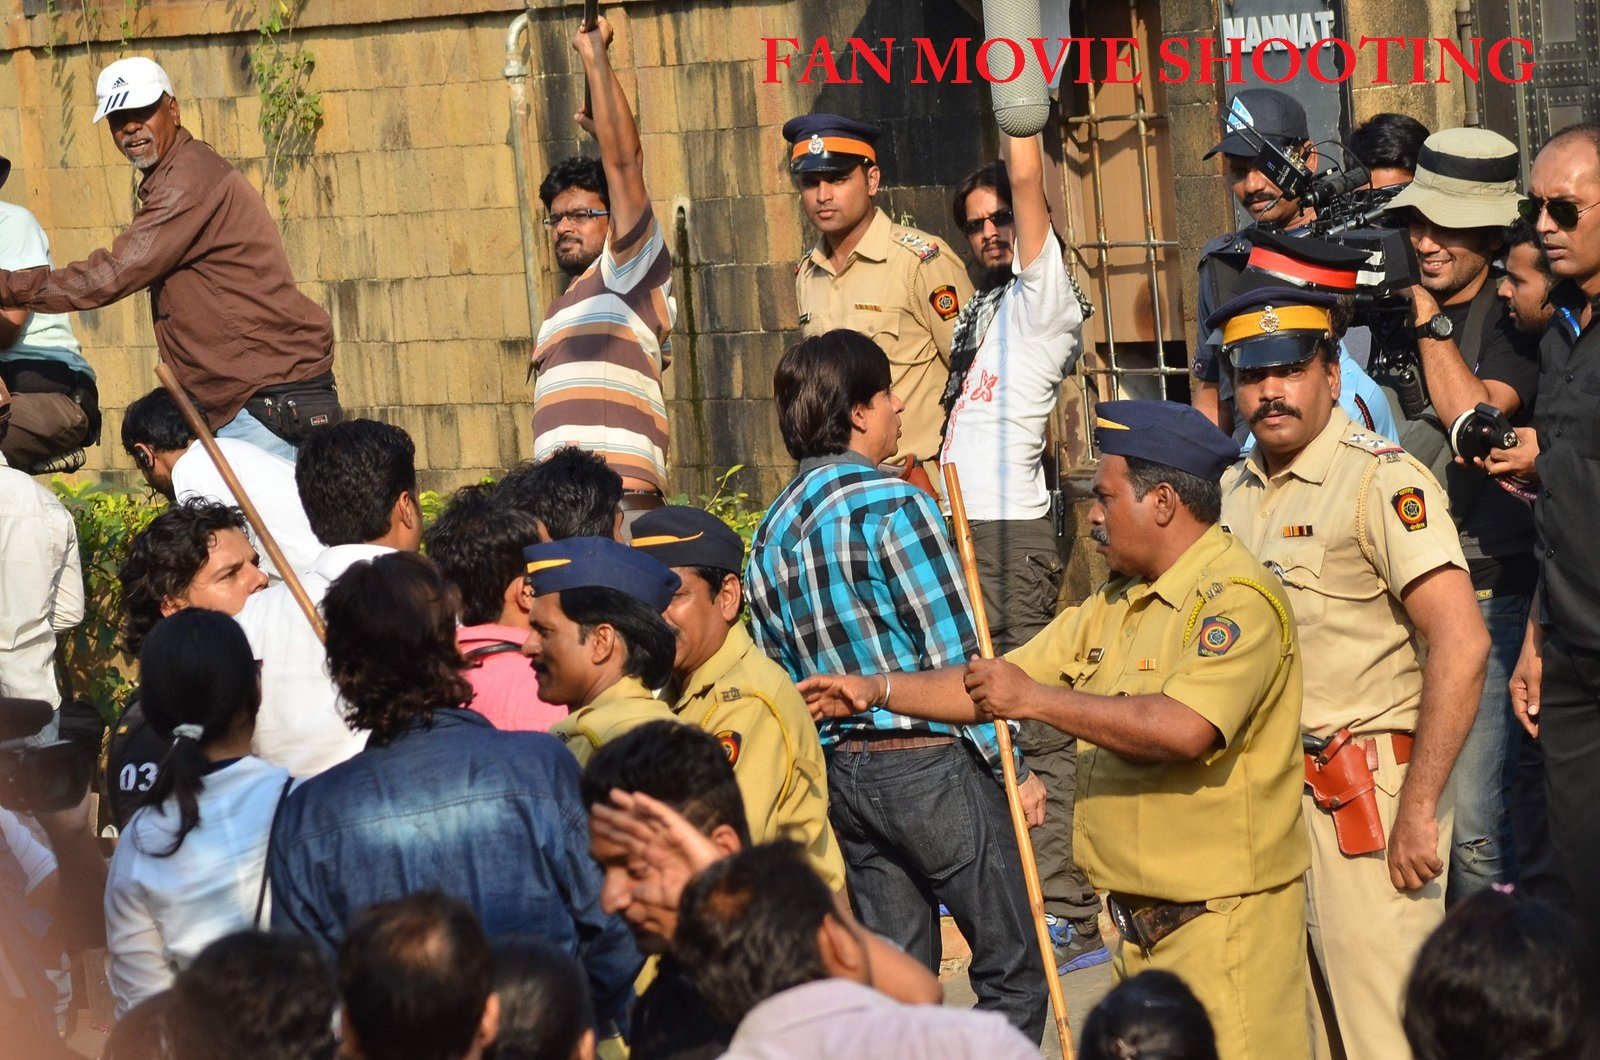 Shahrukh Khan In Fan Movie Shooting